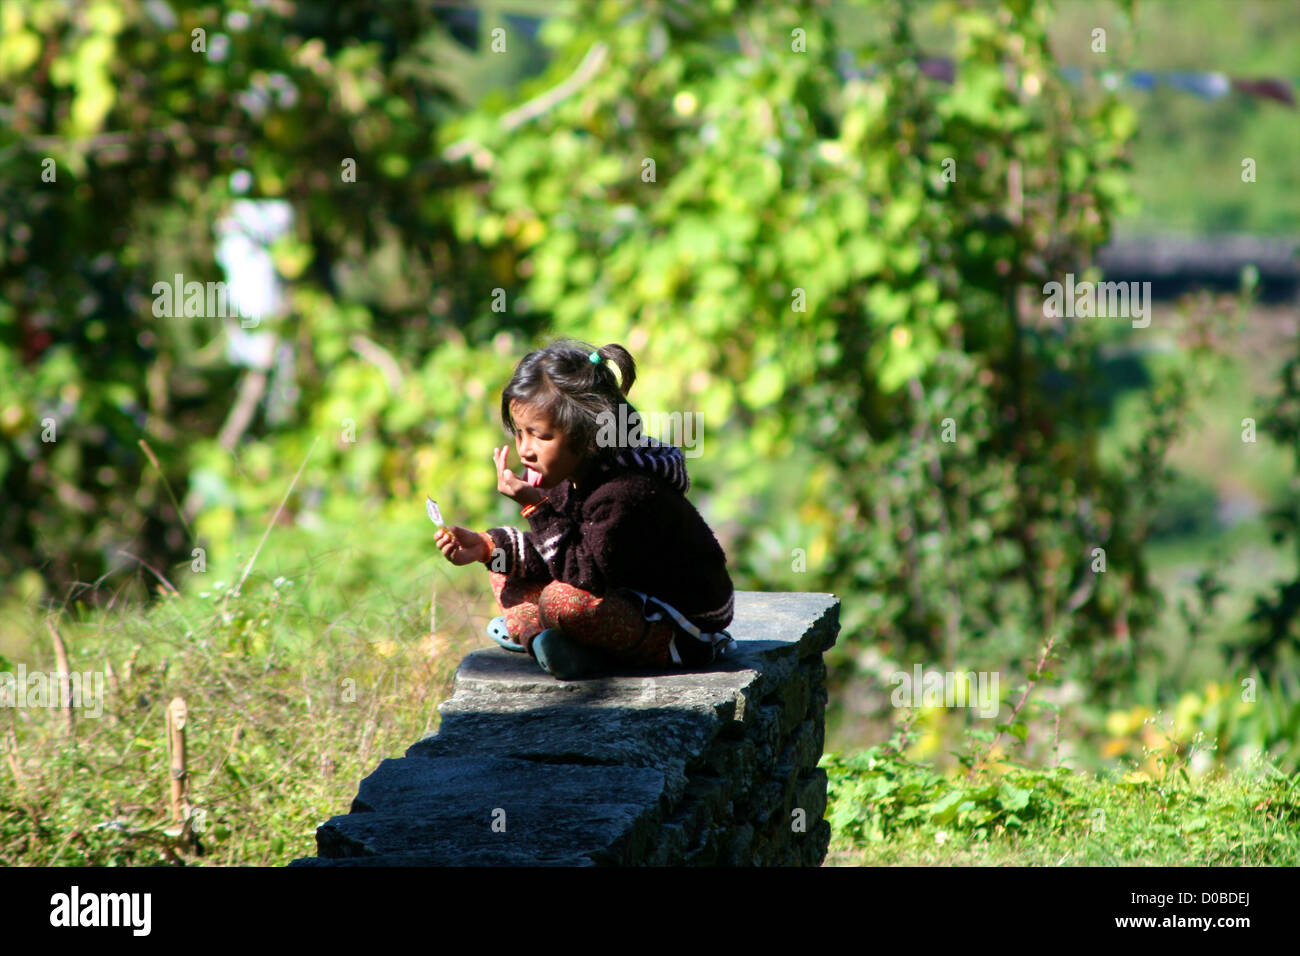 Nepali child in remote village in Helambu region, Nepal - Stock Image